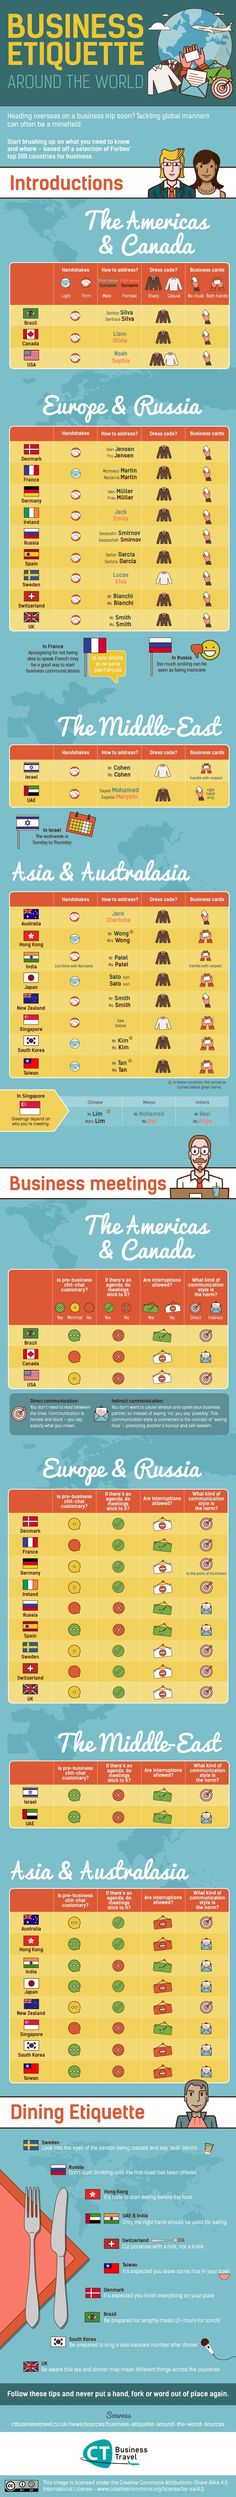 Different Business Etiquette Around The World In One Infographic